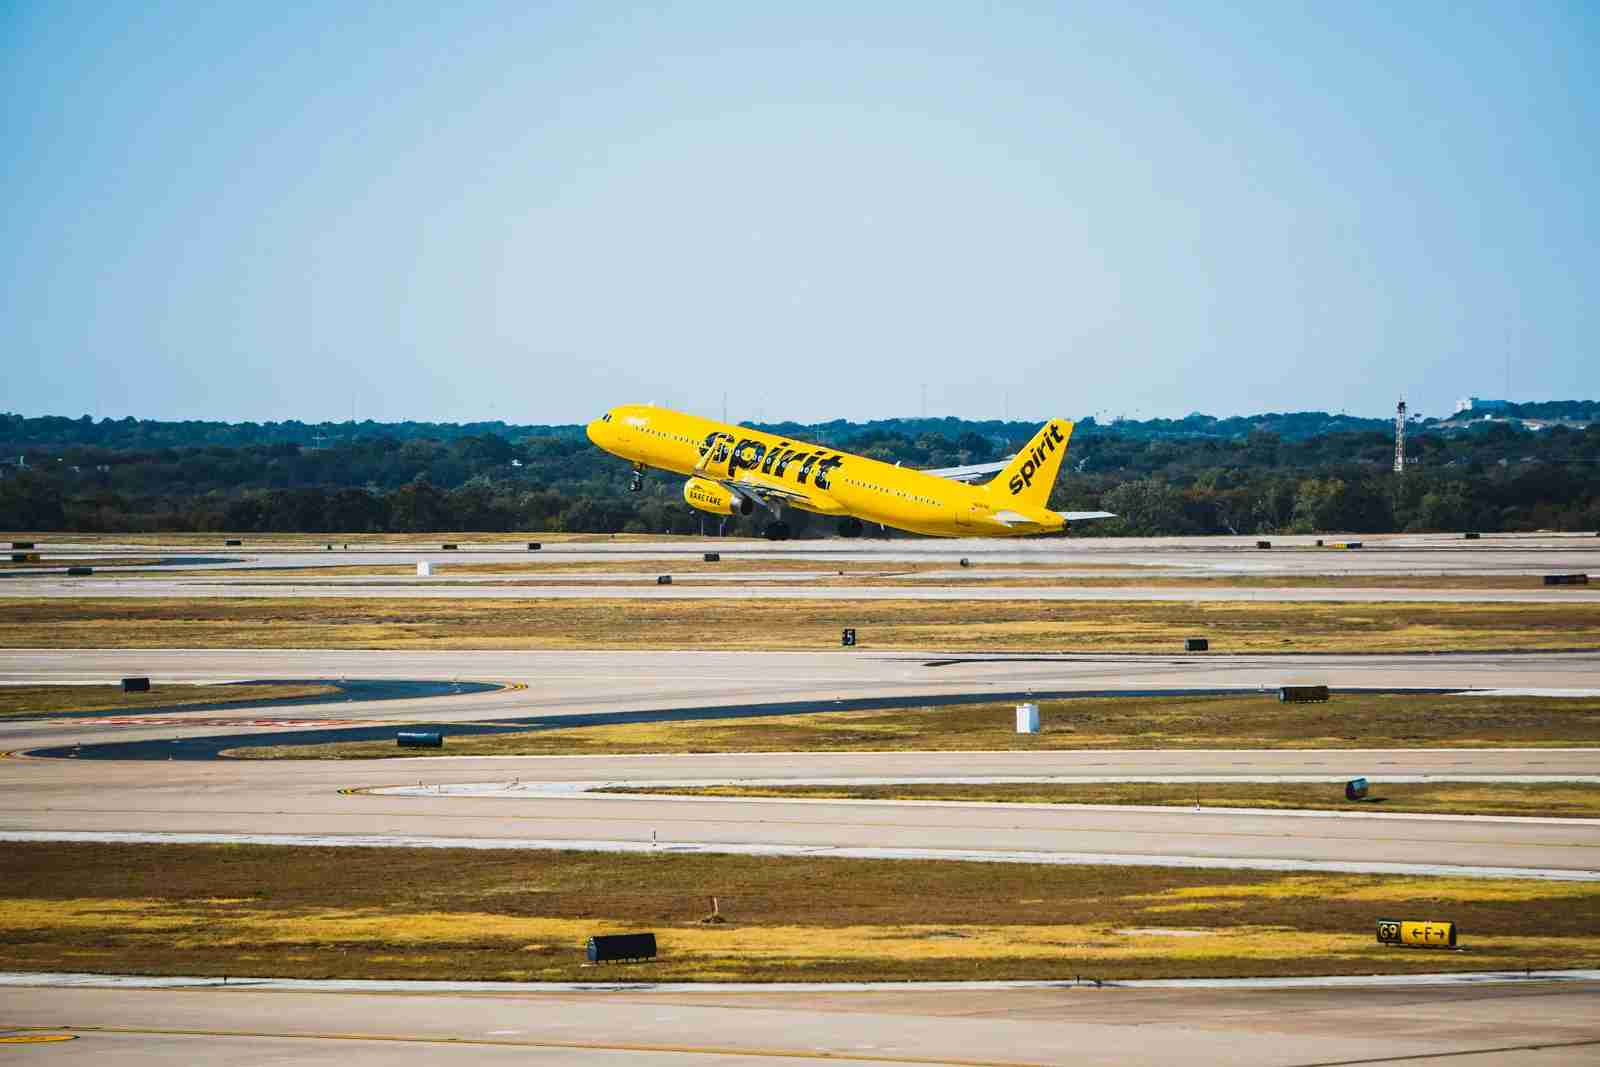 A Spirit Airlines aircraft takes off from Detroit. (Photo by JT Genter/T{G)